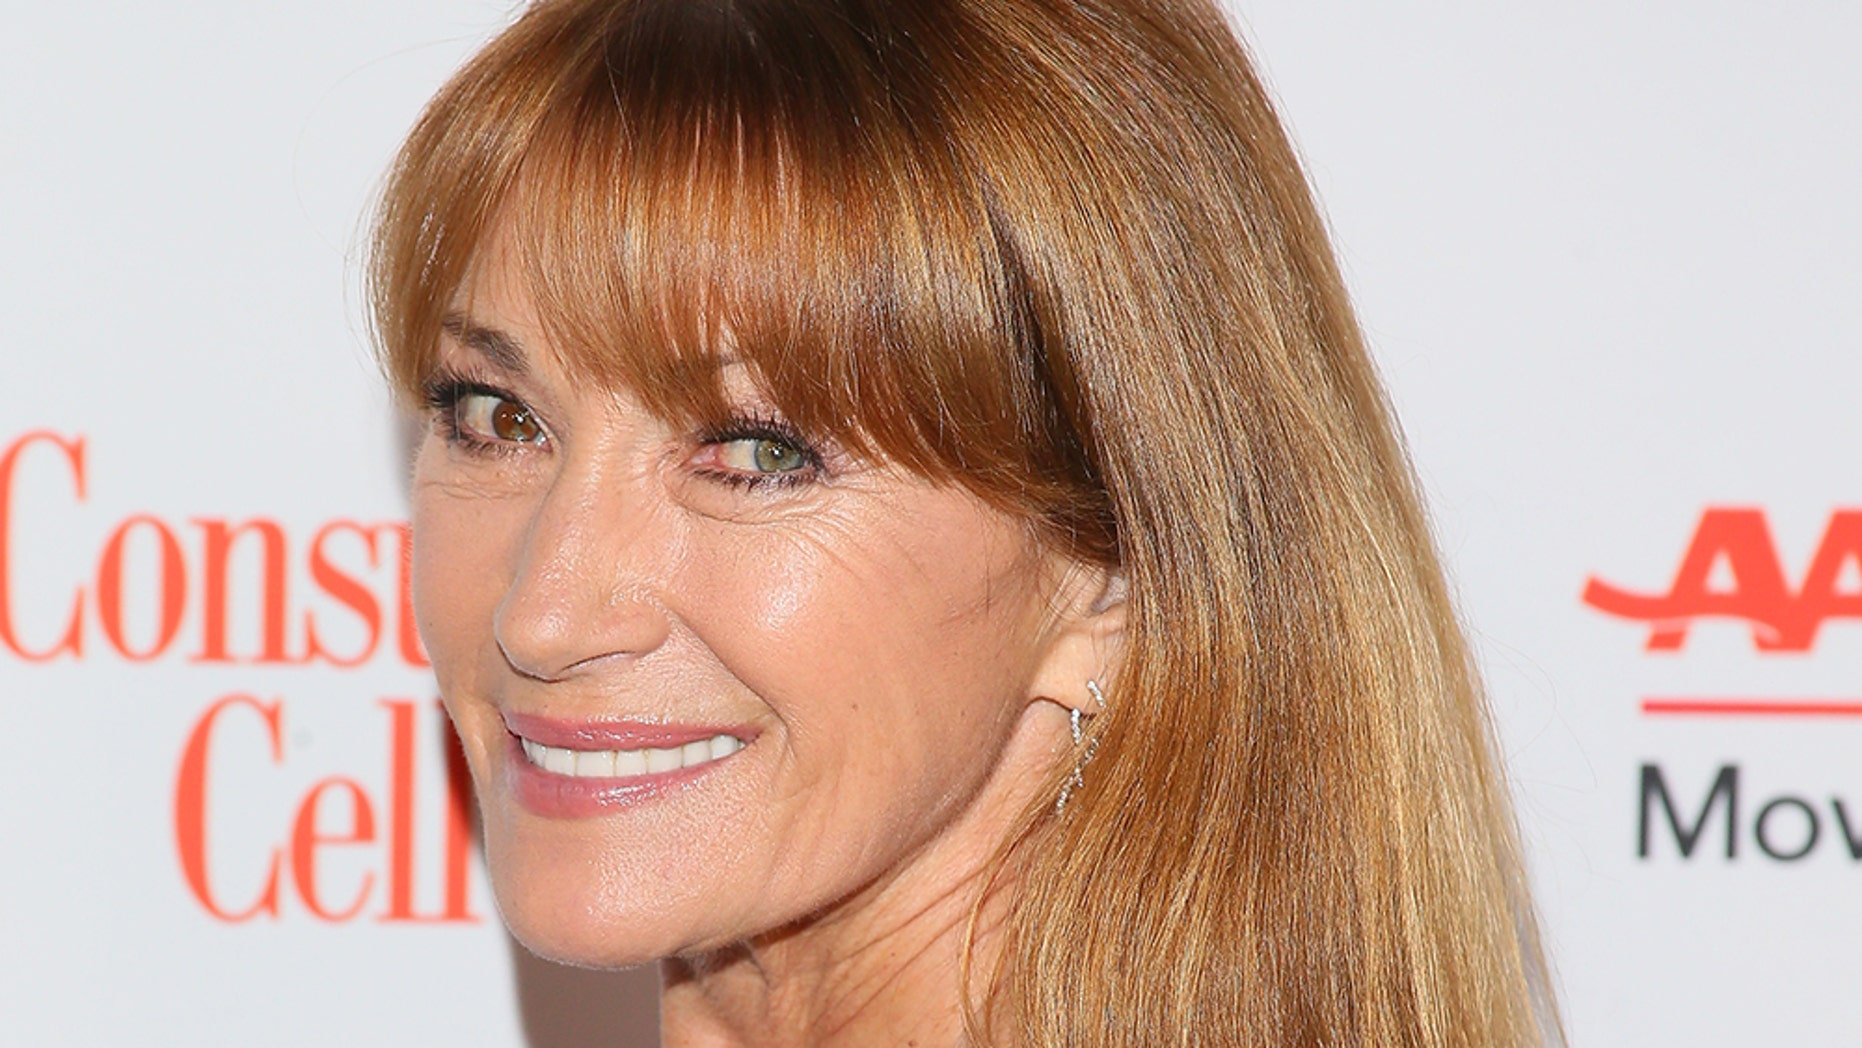 Jane Seymour attends AARP The Magazine's 18th Annual Movies for Grownups Awards at the Beverly Wilshire Four Seasons Hotel on Feb. 4, 2019 in Beverly Hills, Calif.